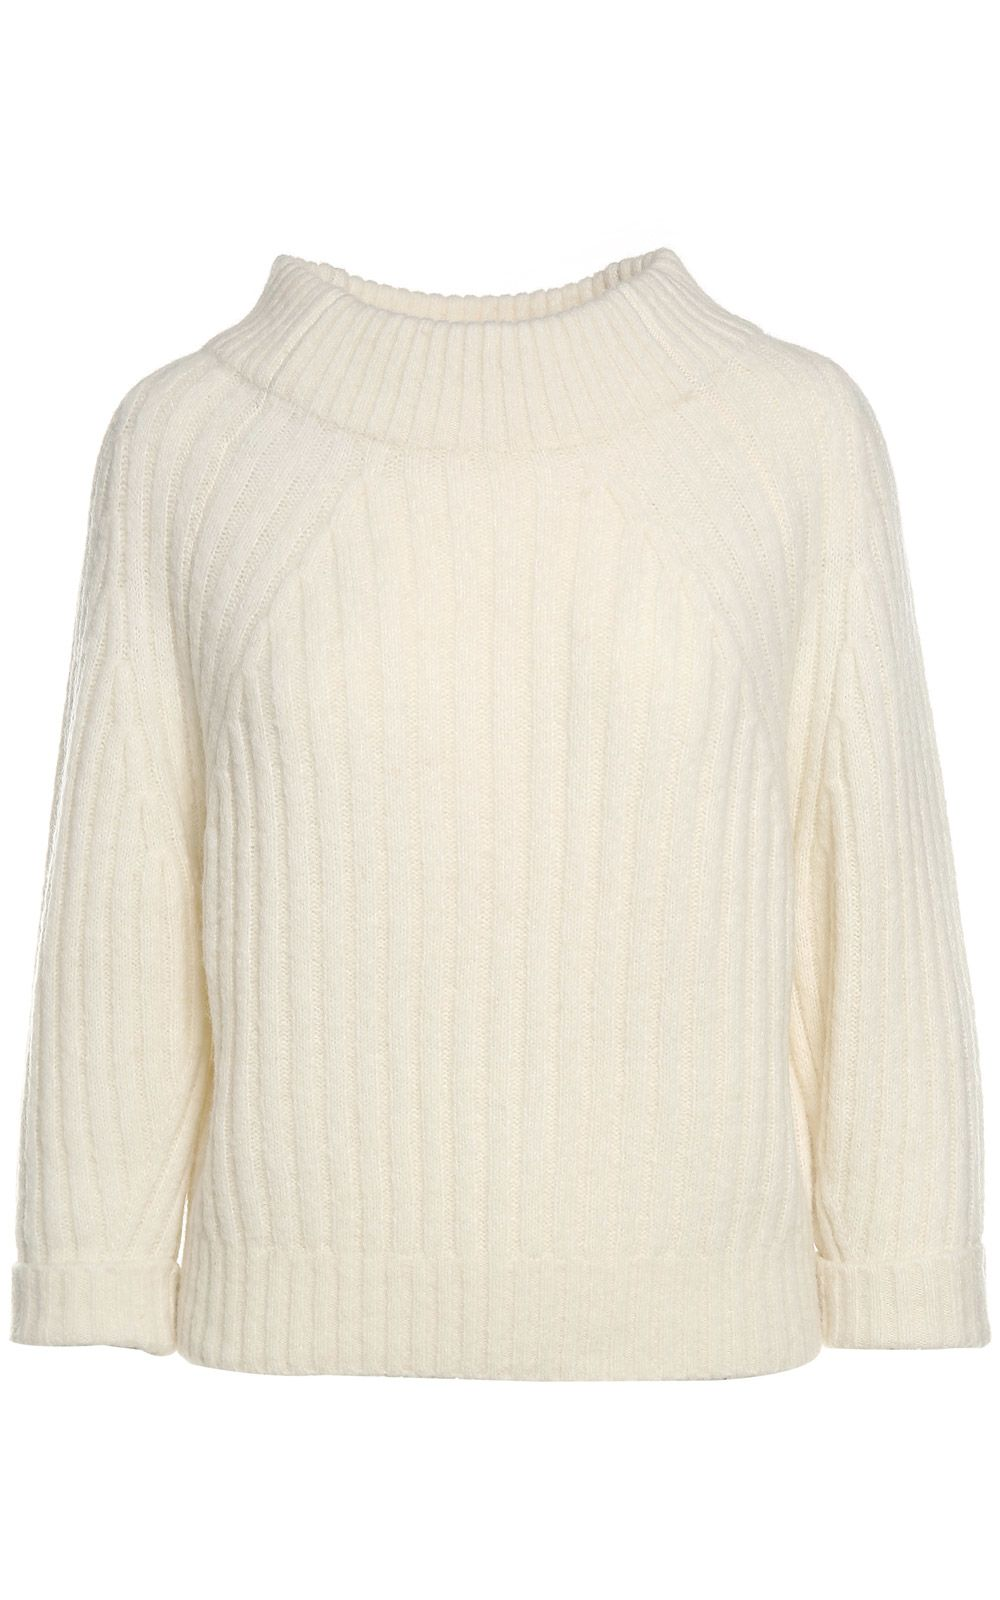 3.1 Phillip Lim Ribbed Wool And Alpaca-blend Sweater